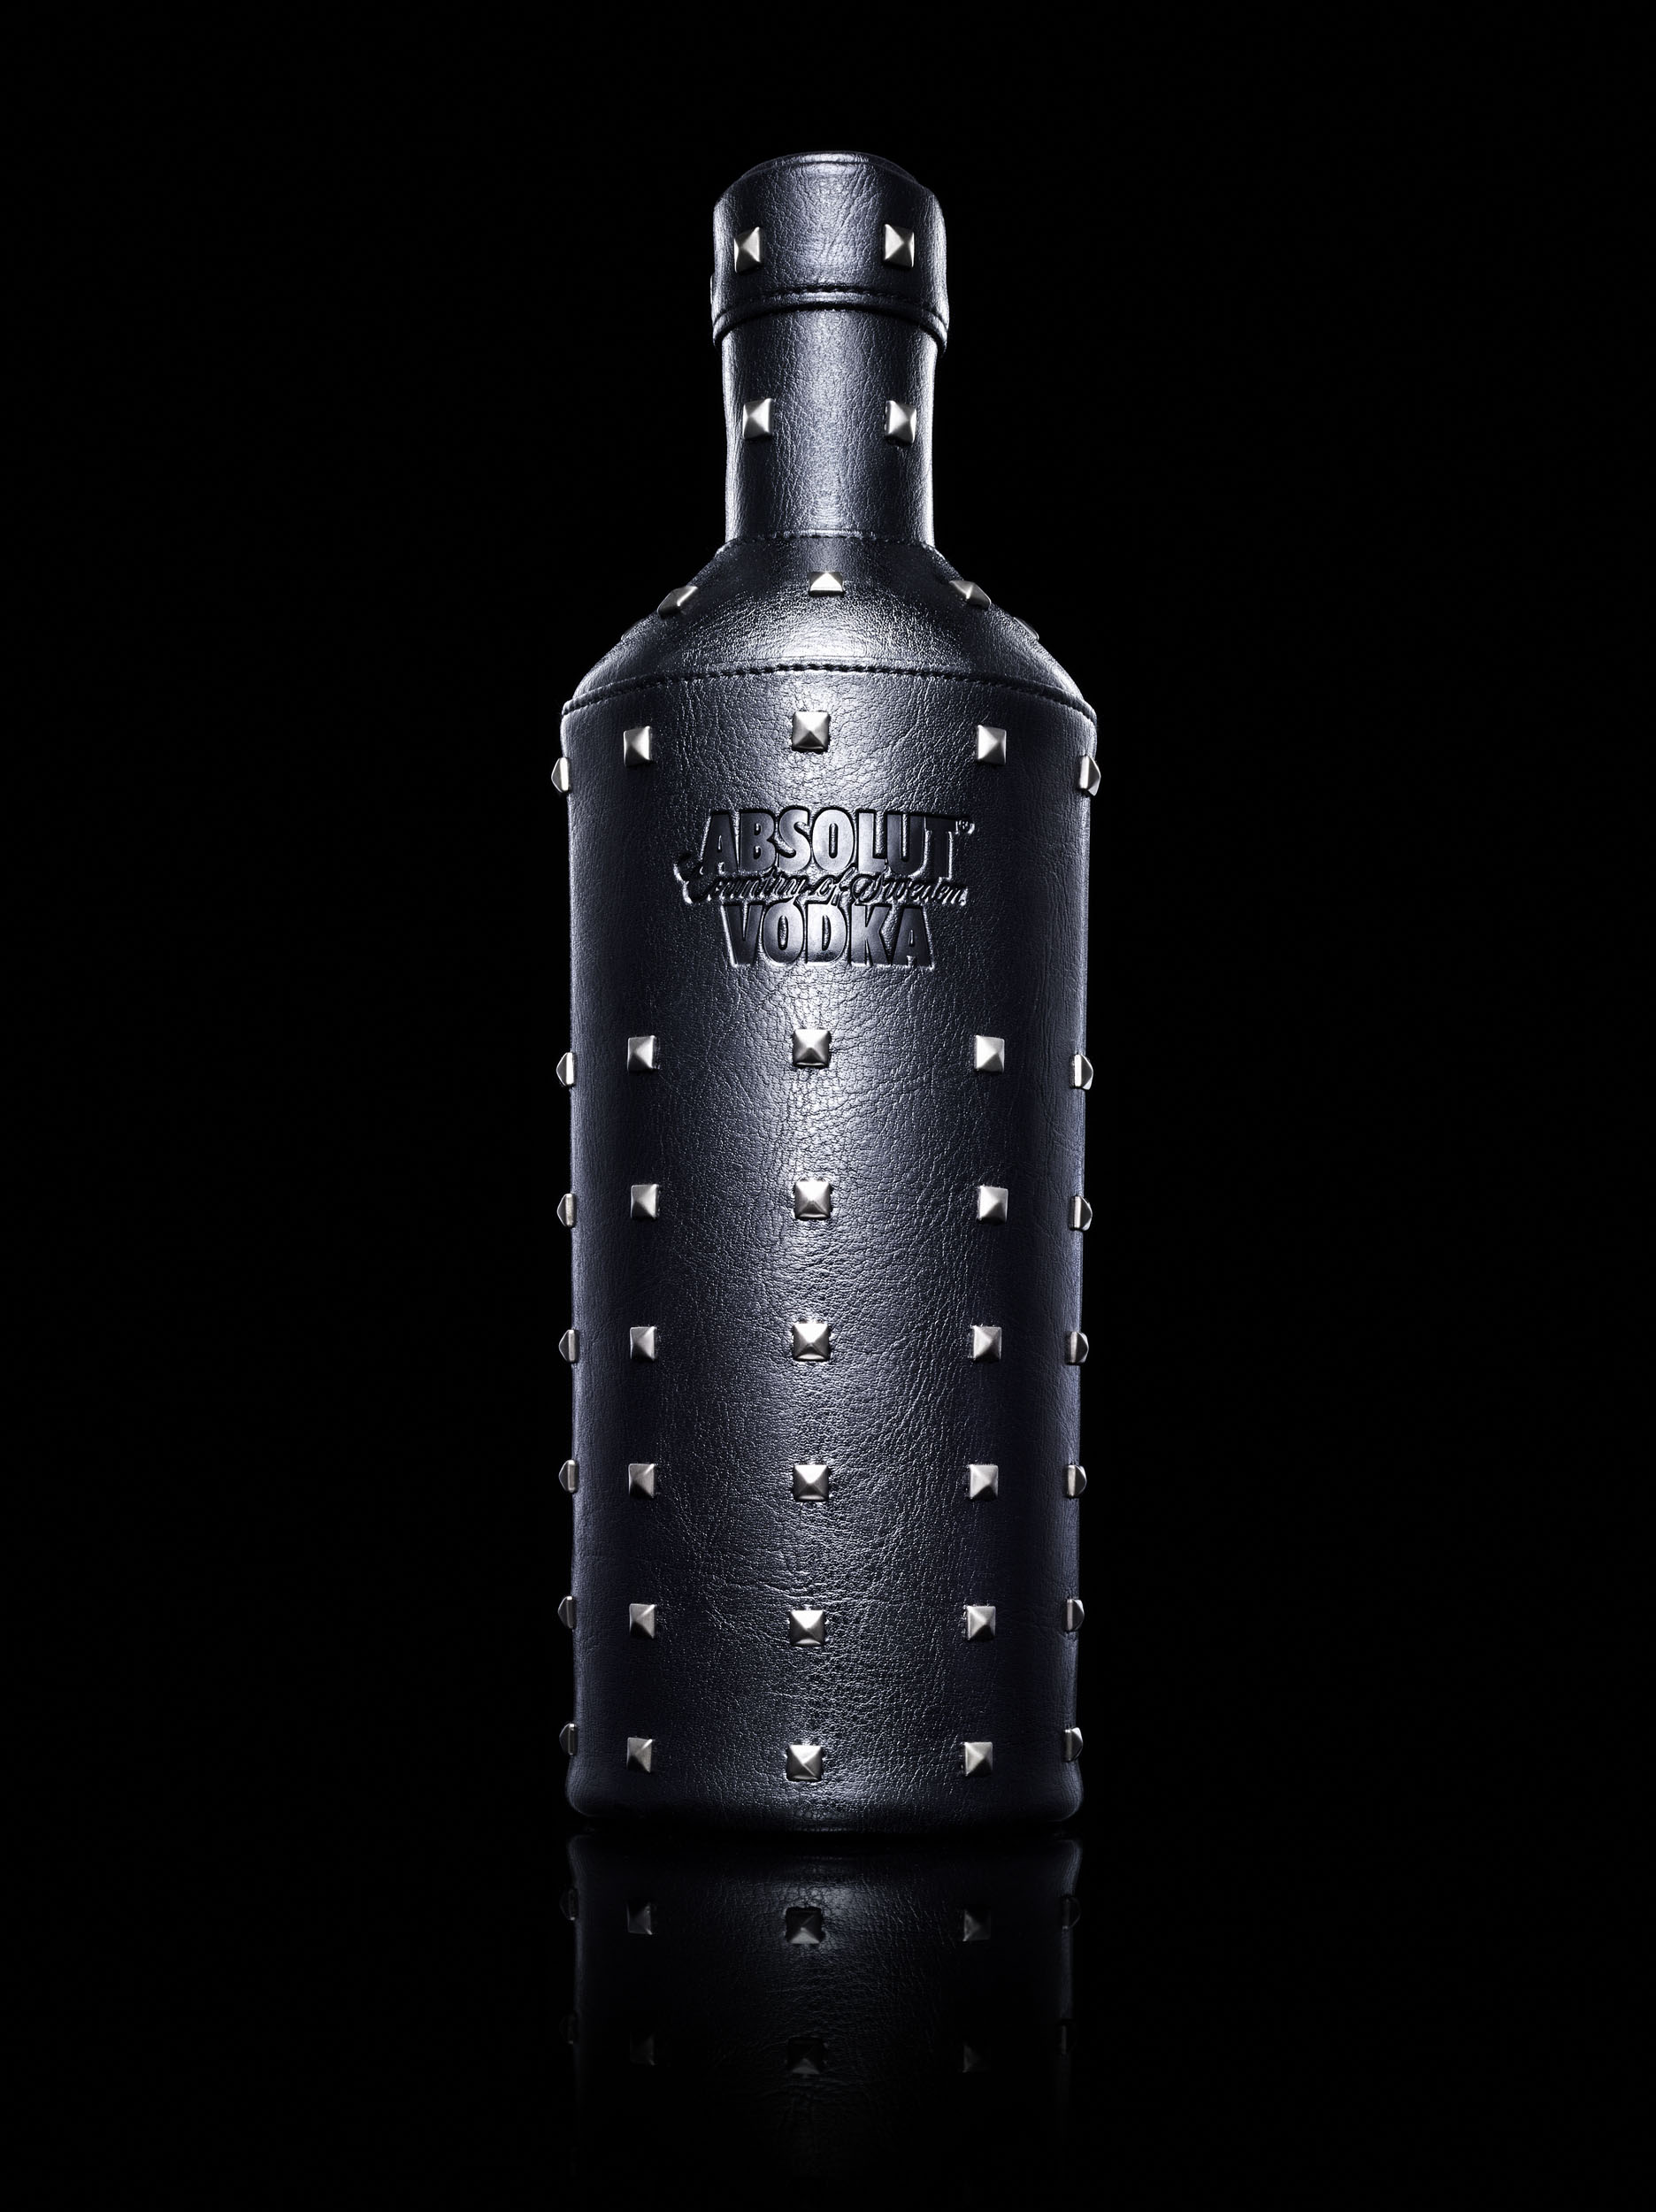 jensmortensen-absolut-vodka-bb4798f3